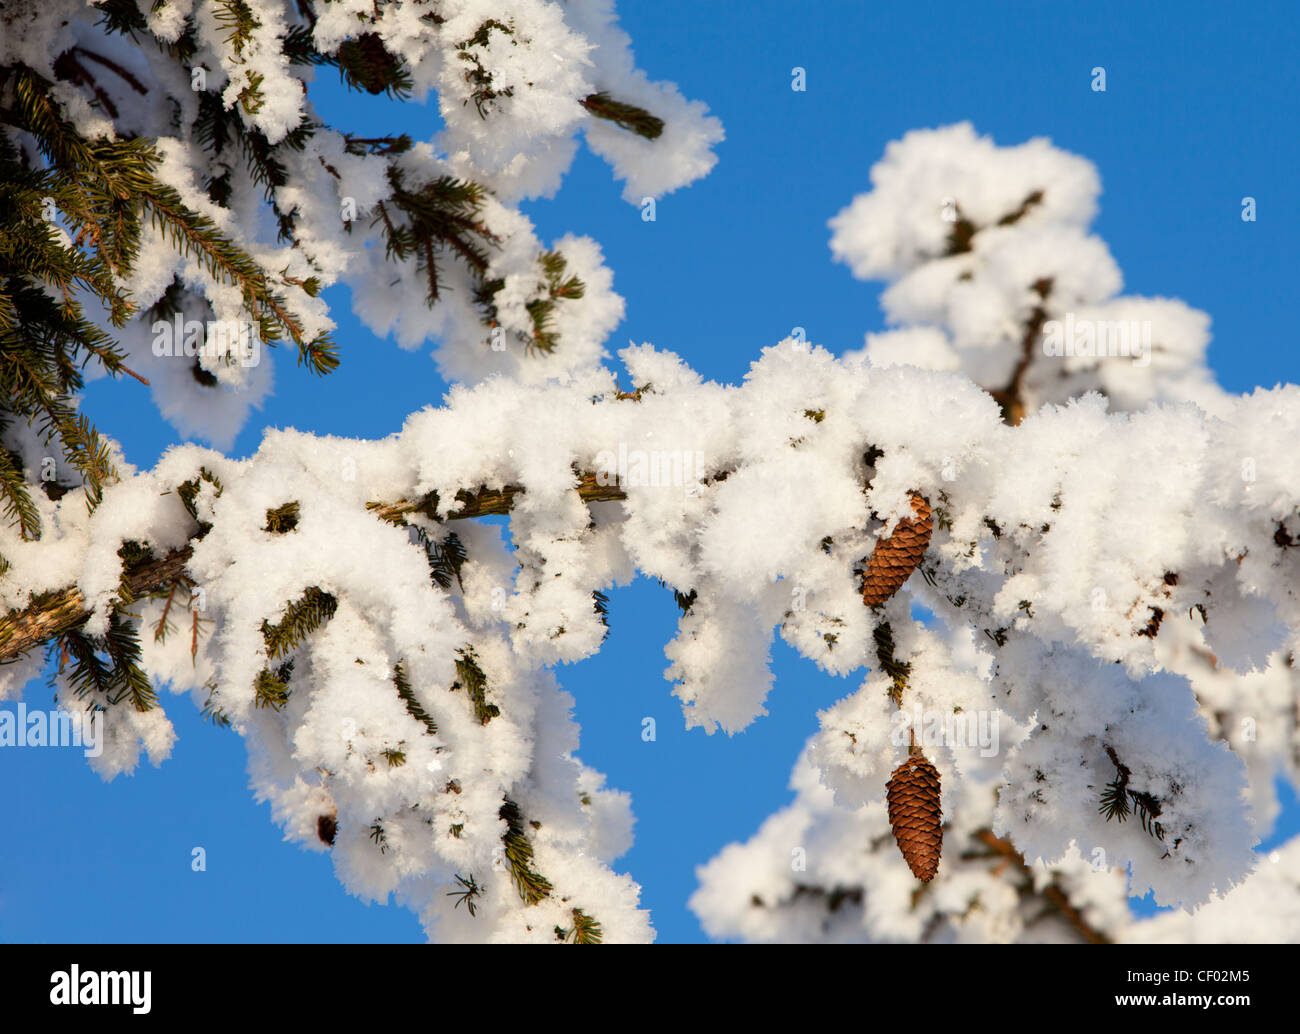 Snowy spruce ( picea abies ) branch with cones - Stock Image